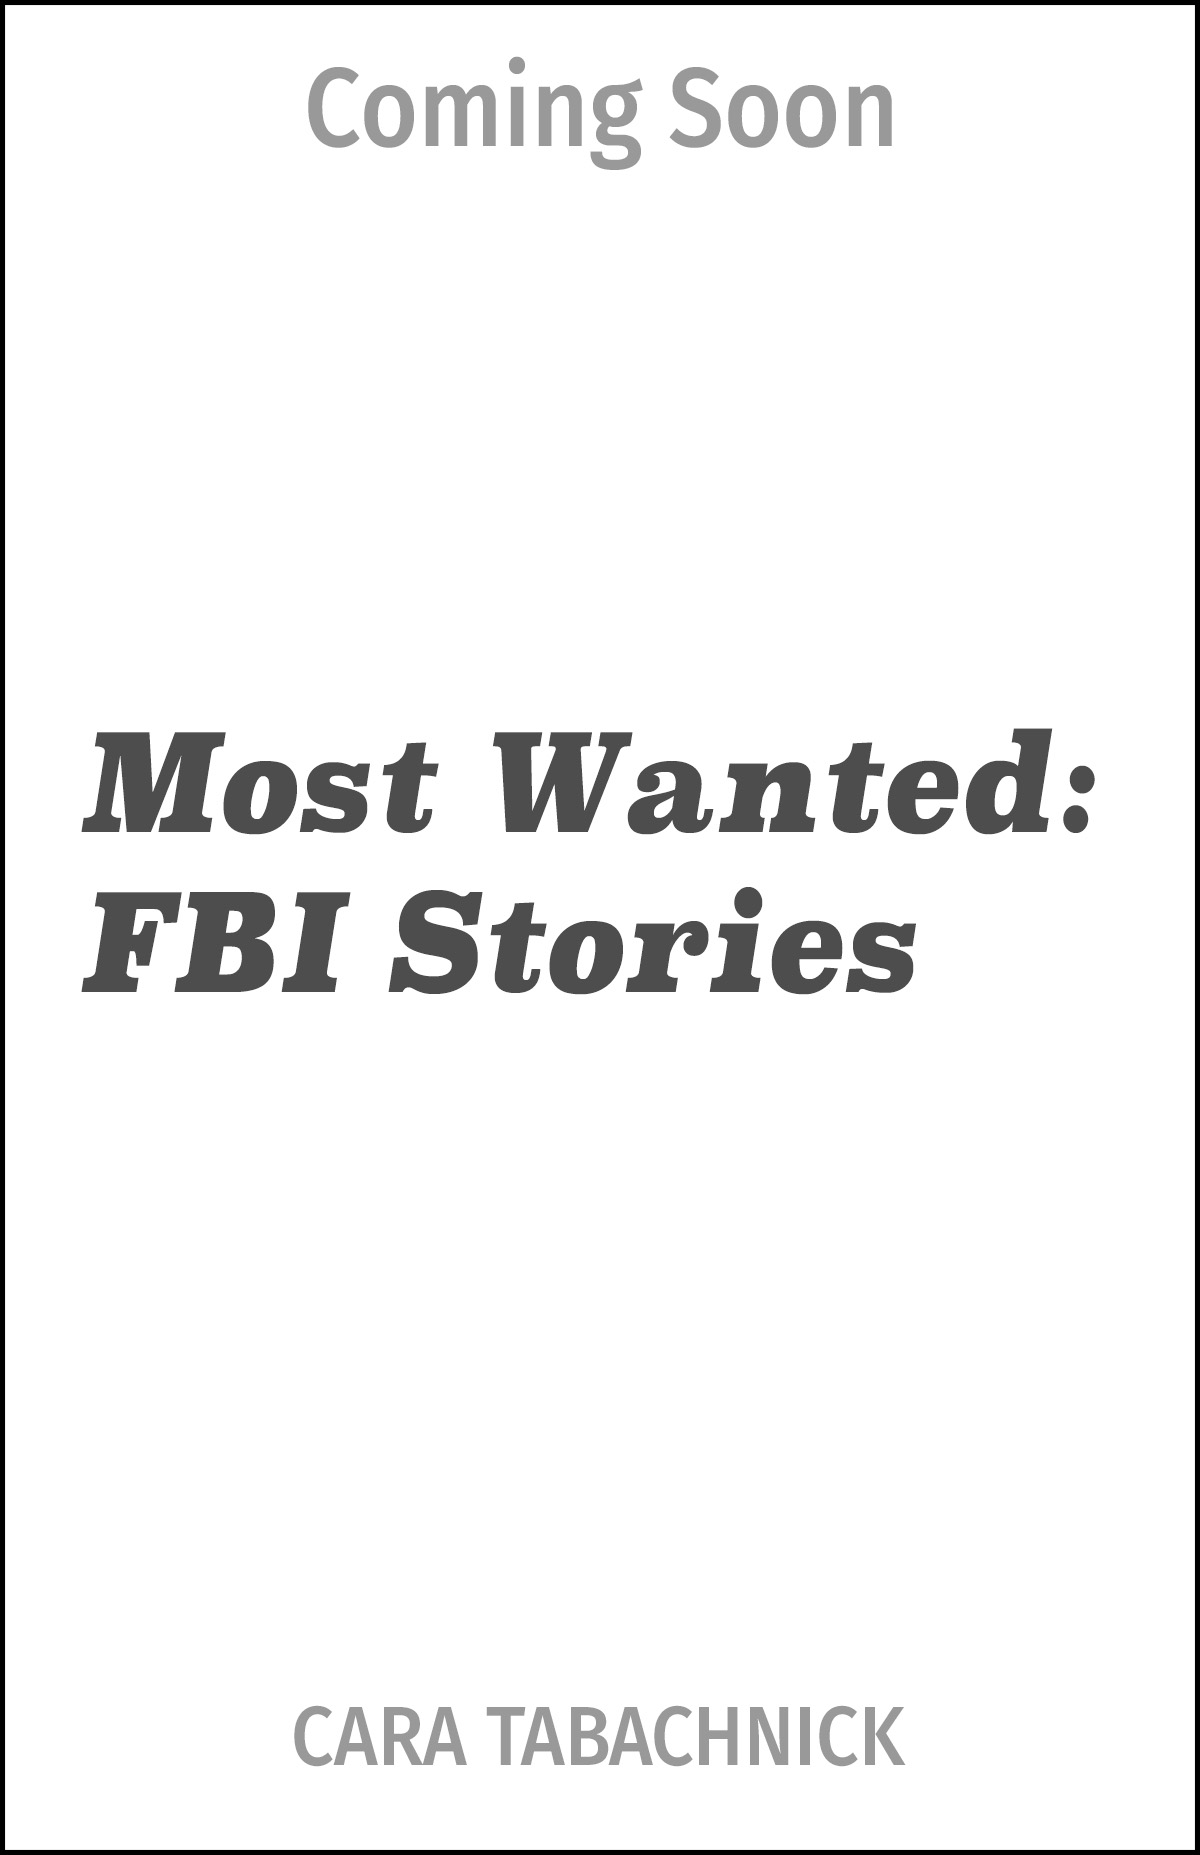 Coming Soon - PUBLISHER: HARPERS COLLINS UKMost Wanted: FBI Stories.